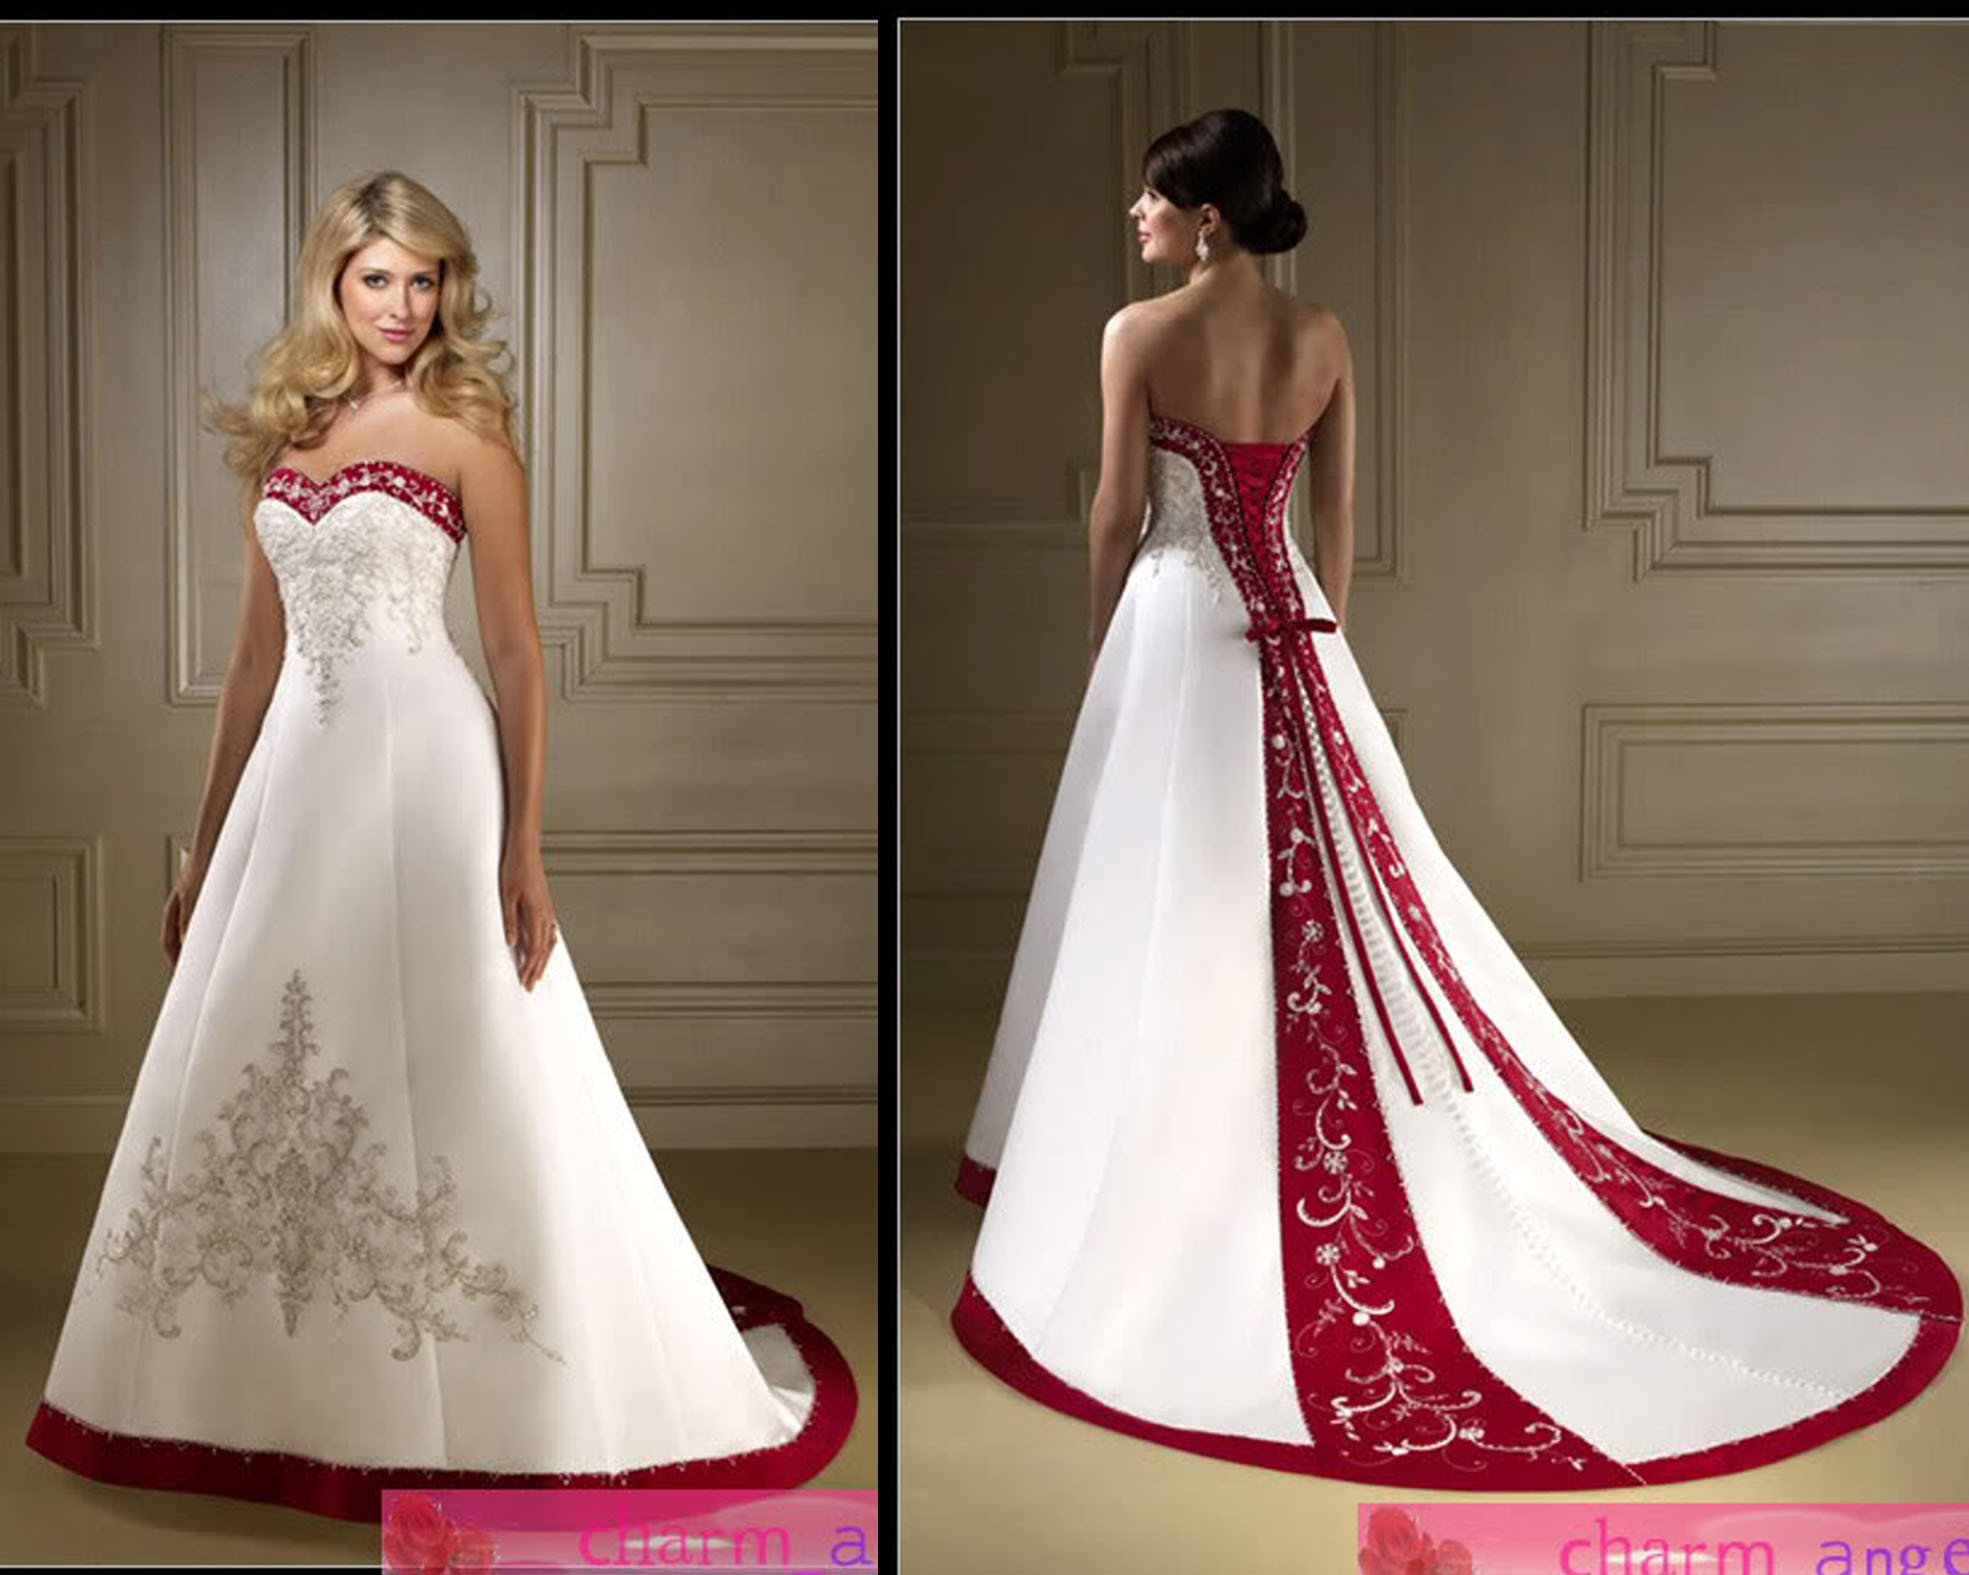 China wedding dress rs 055 china wedding dresses for Wedding dresses in china